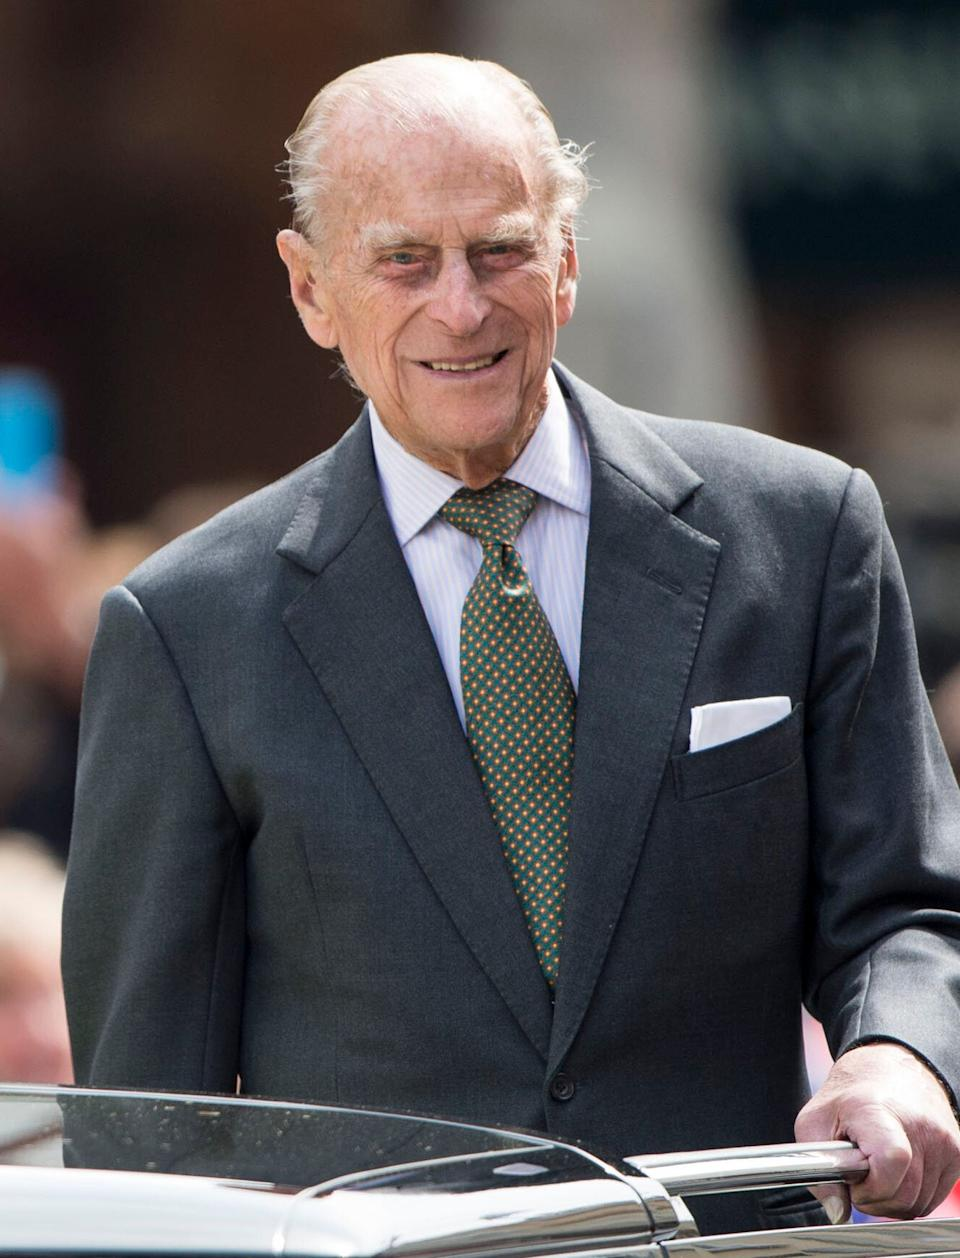 Prince Philip pictured during the Queen's 90th birthday celebrations (Photo: Mark Cuthbert via Getty Images)